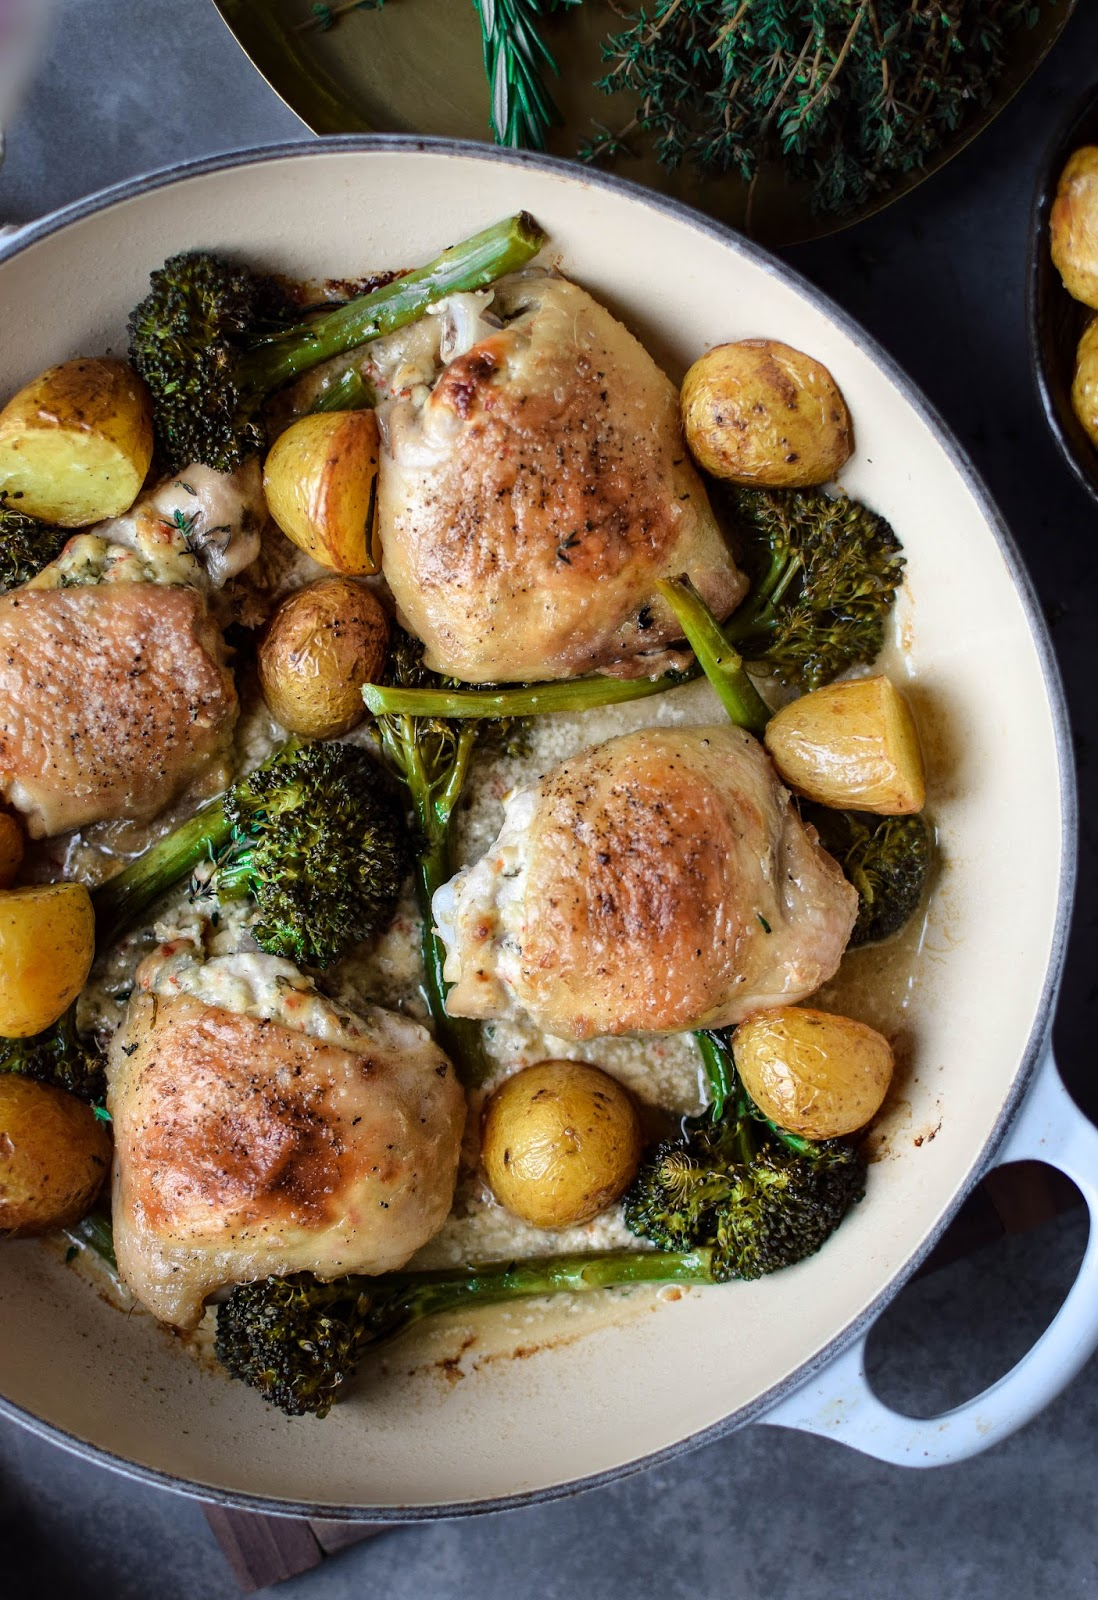 These blue cheese and chilli stuffed chicken thighs are the ultimate weekend lunch dish. This one pan recipe is super simple to throw together without scrimping on taste. Serve with some roasted new potatoes for a decadent treat.